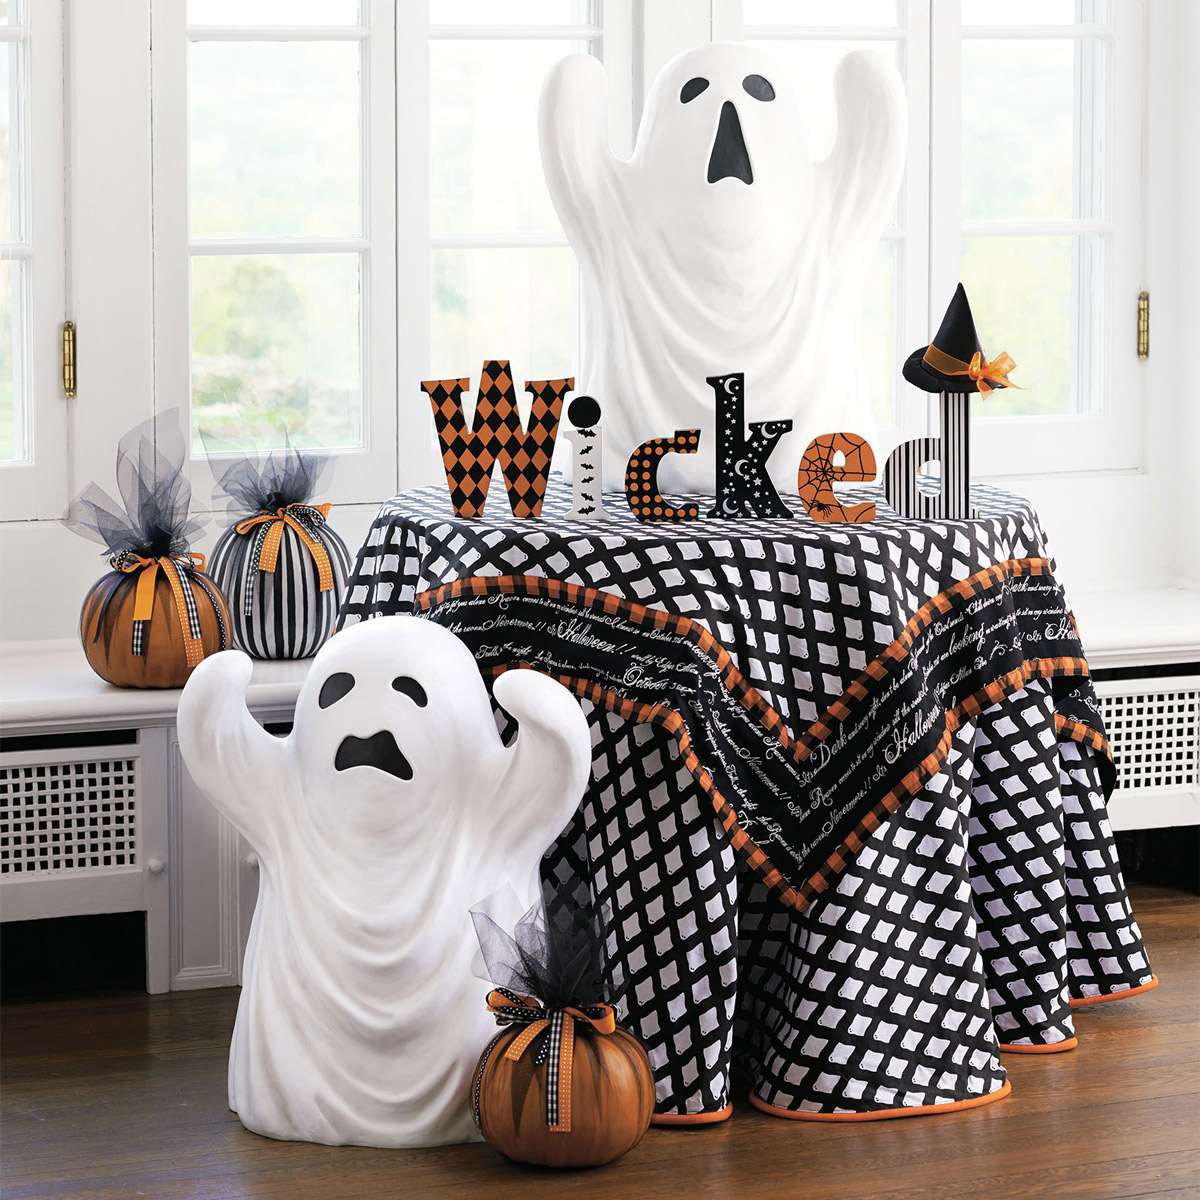 Halloween Decorations Home: Halloween Ghost Statues